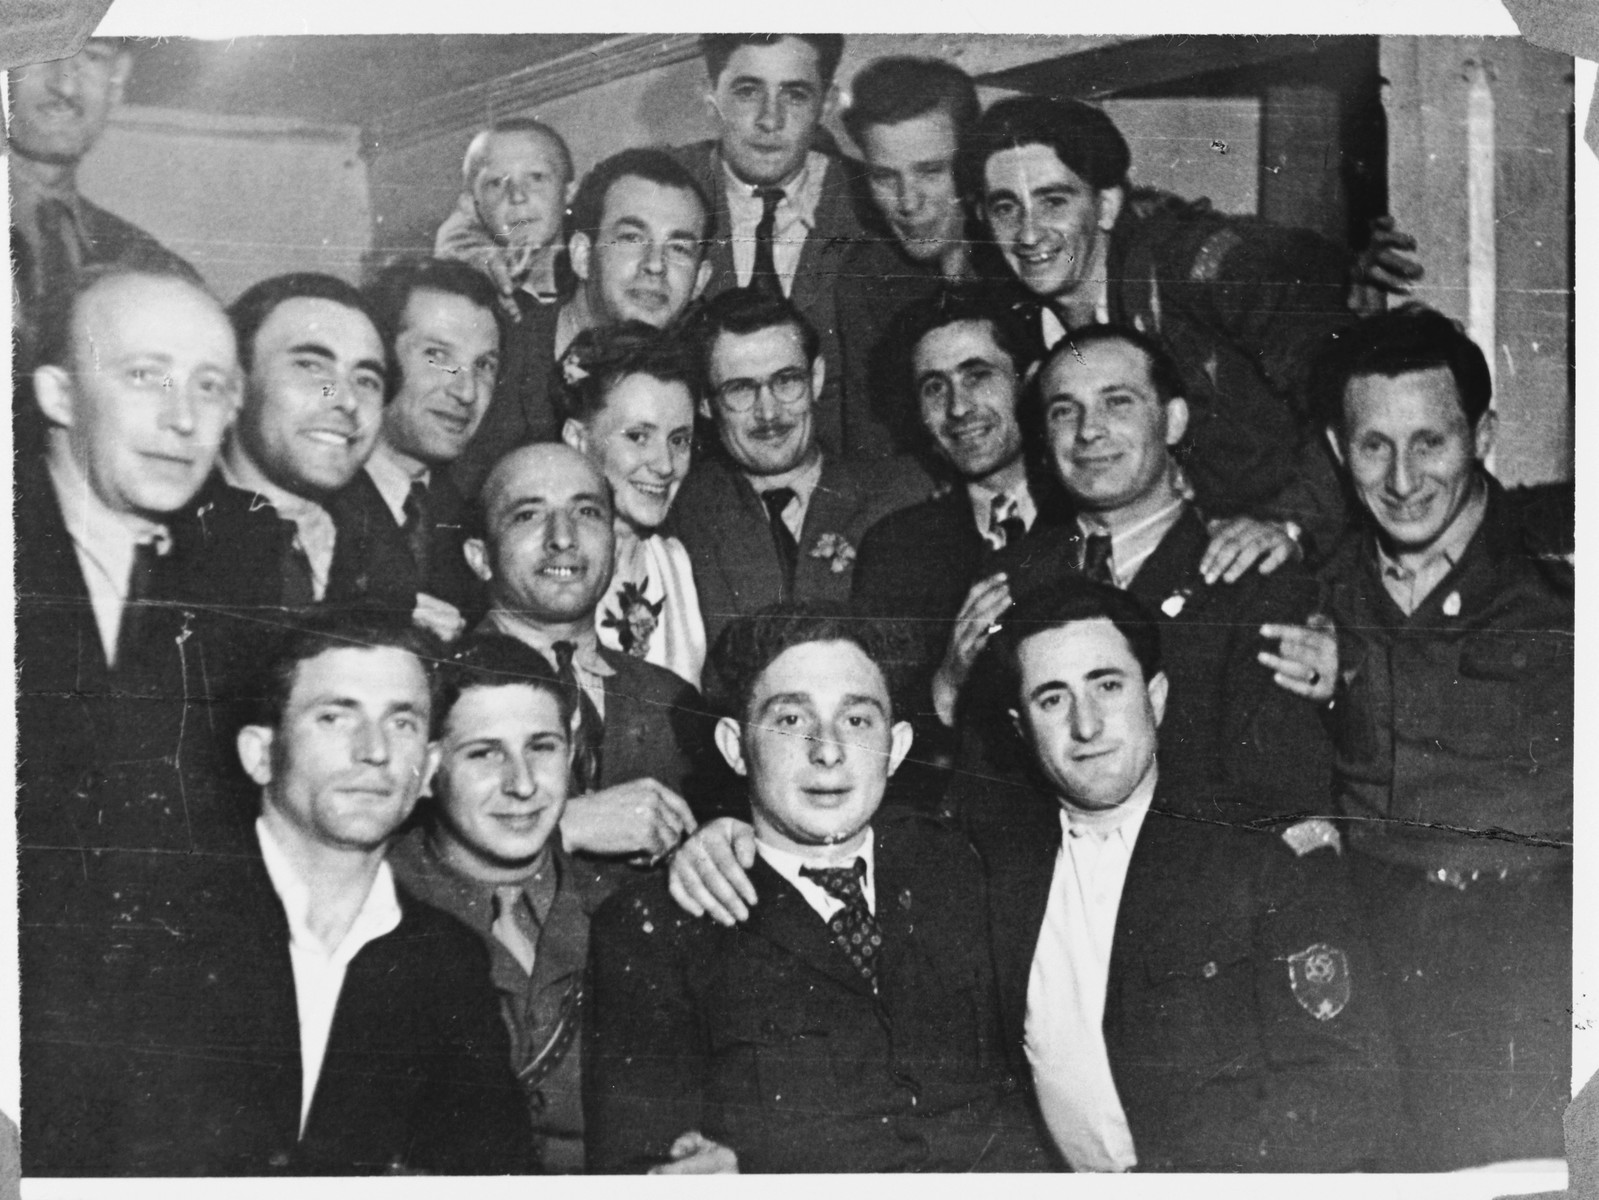 Relief workers, Marion and Tony Pritchard (center), celebrate their wedding in the Windsheim displaced persons' camp.  Also pictured is Abraham Adler (front, center).